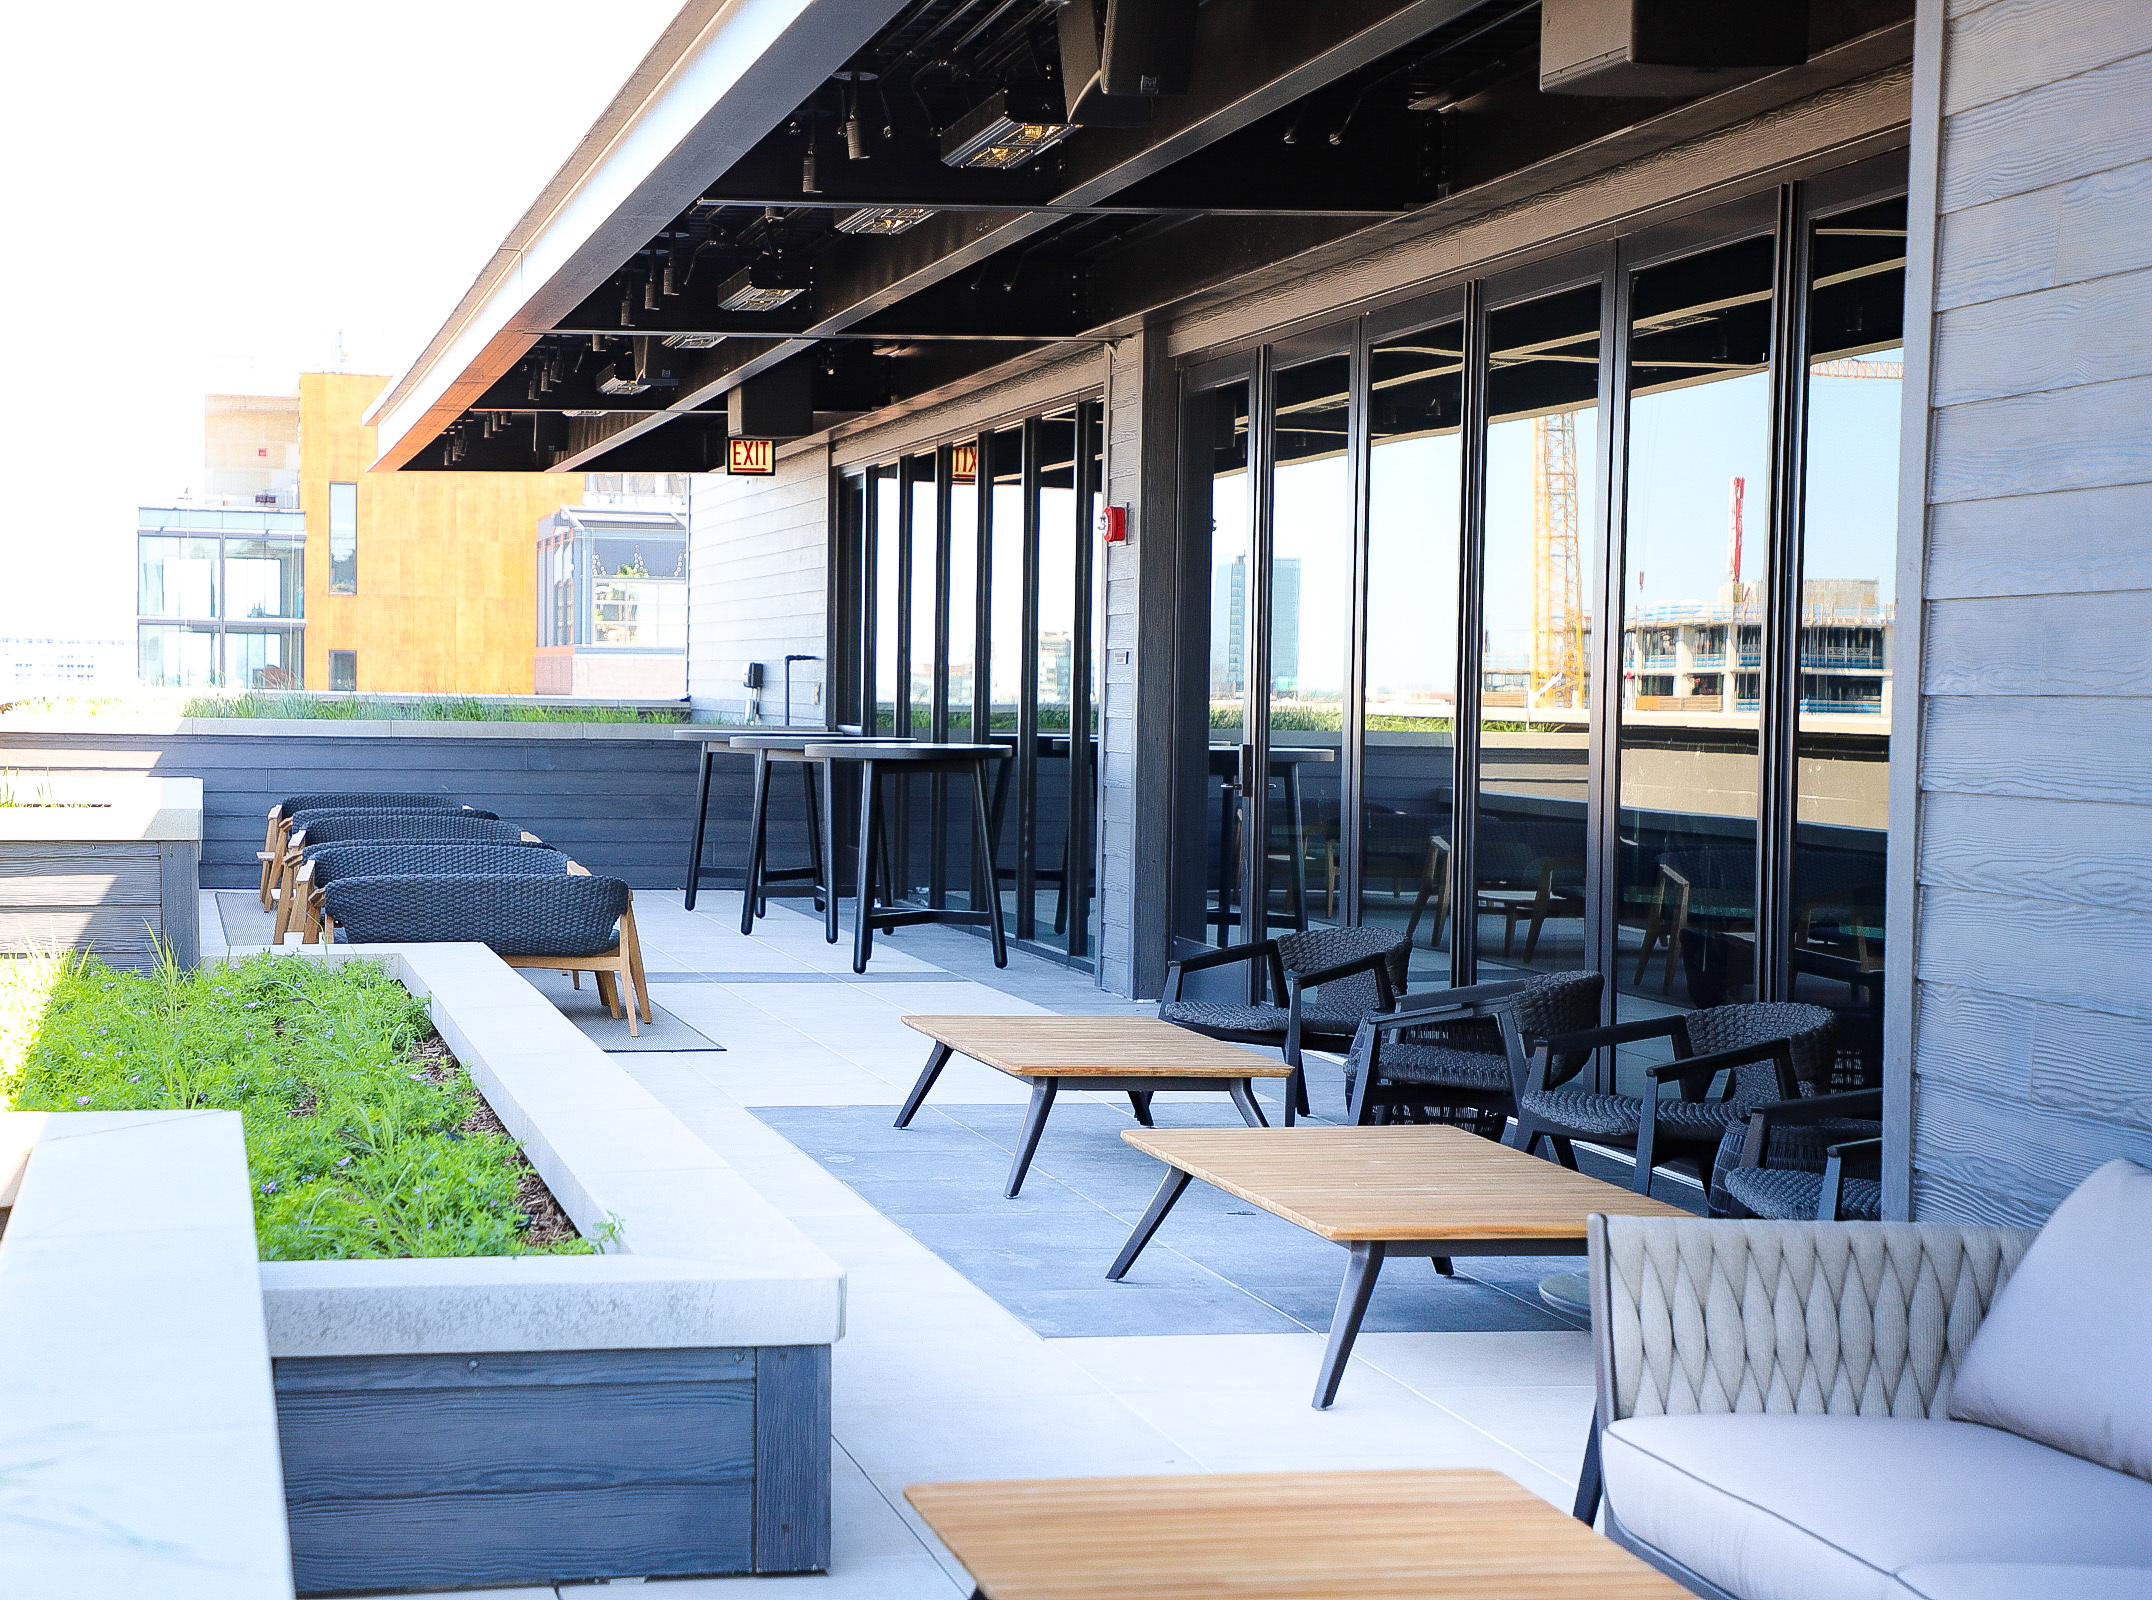 Take a look around the Rooftop at Nobu, open now in the West Loop